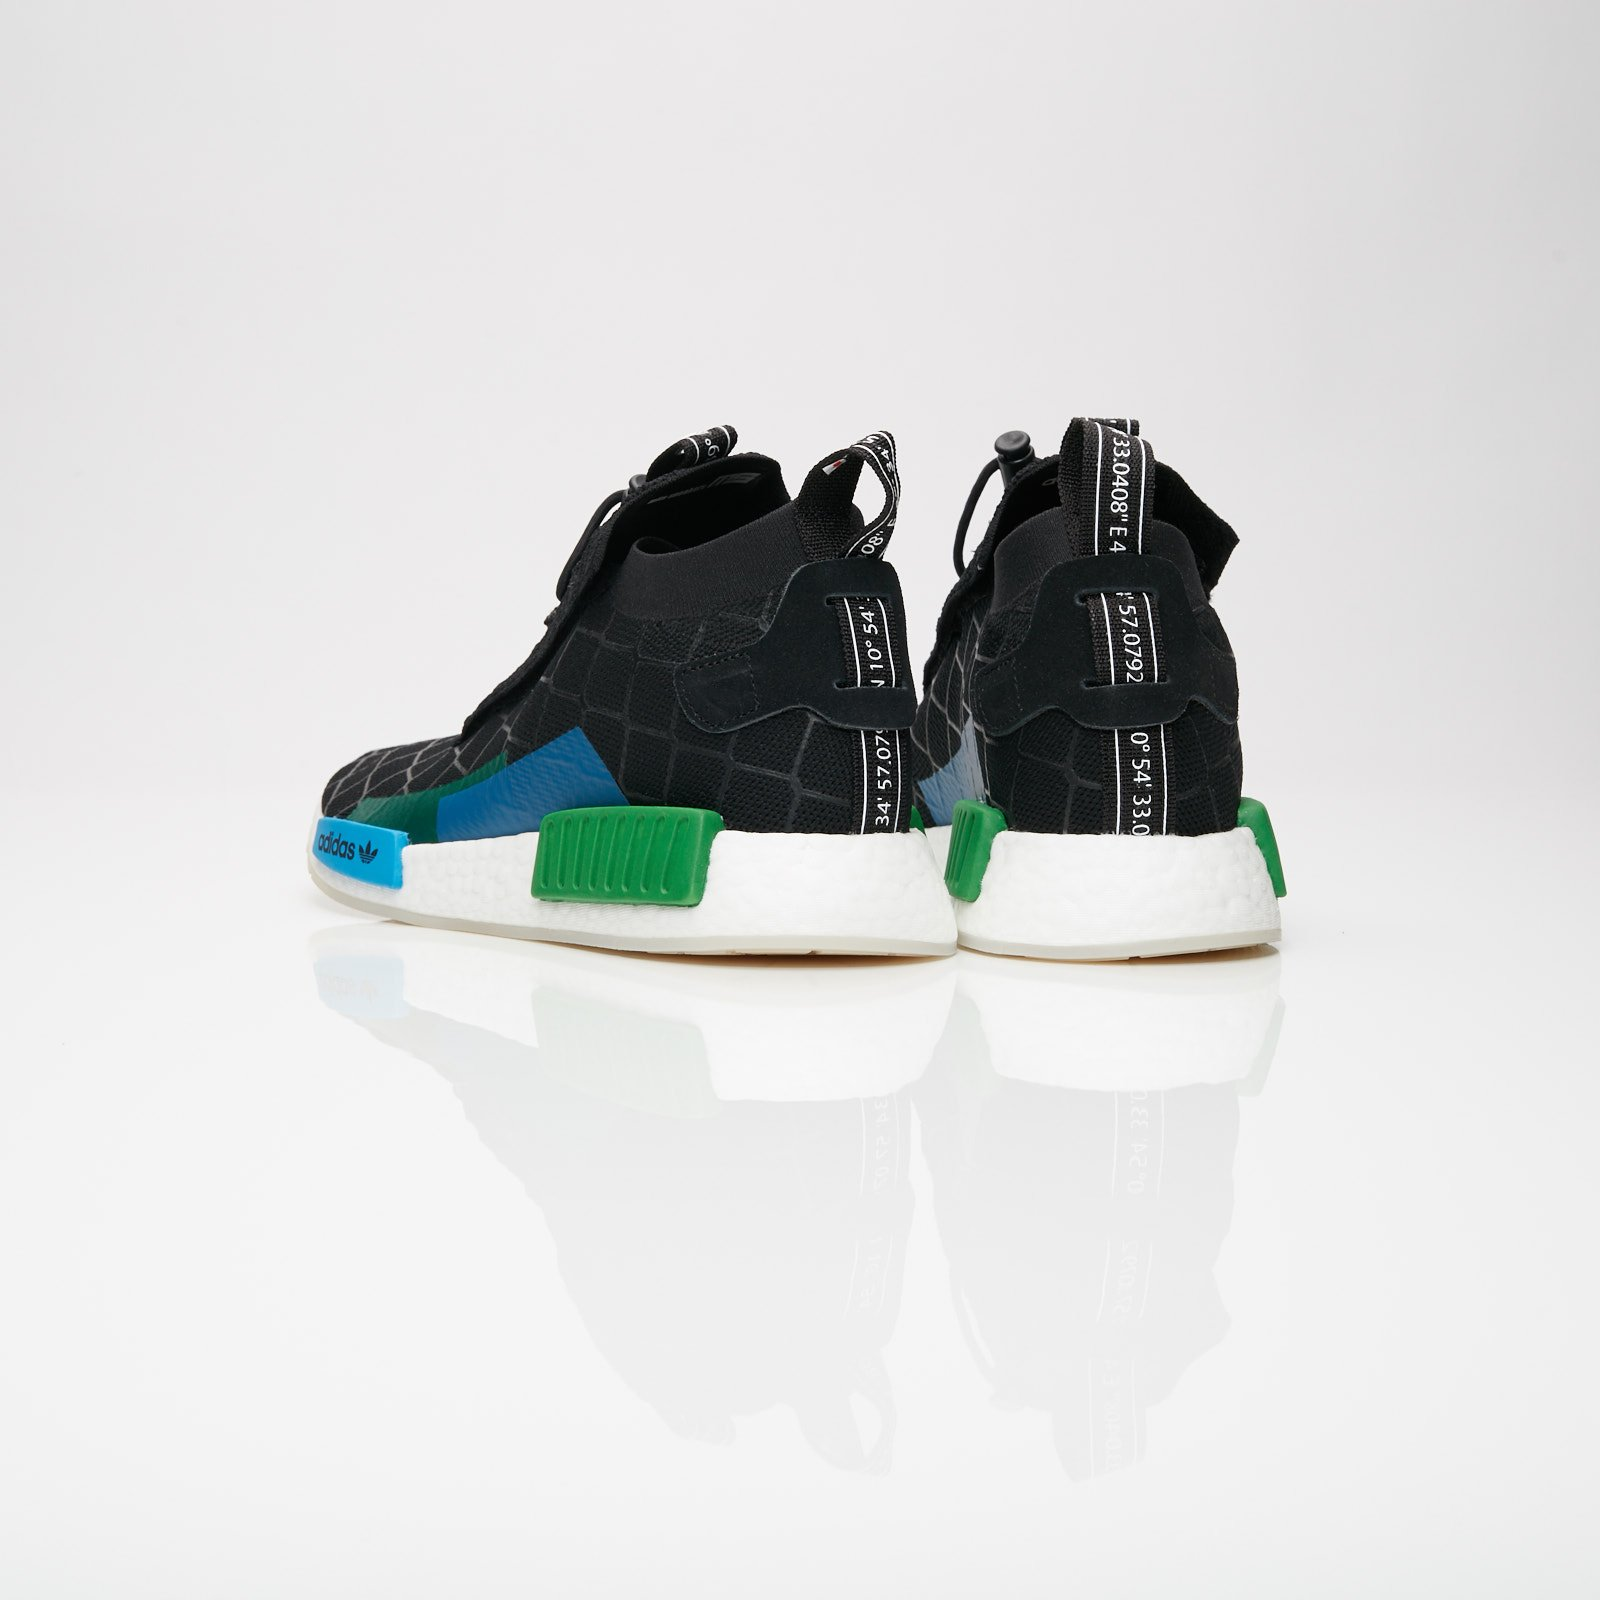 more photos b5ca3 6f884 adidas NMD R1 STLT MITA - Bc0333 - Sneakersnstuff | sneakers ...